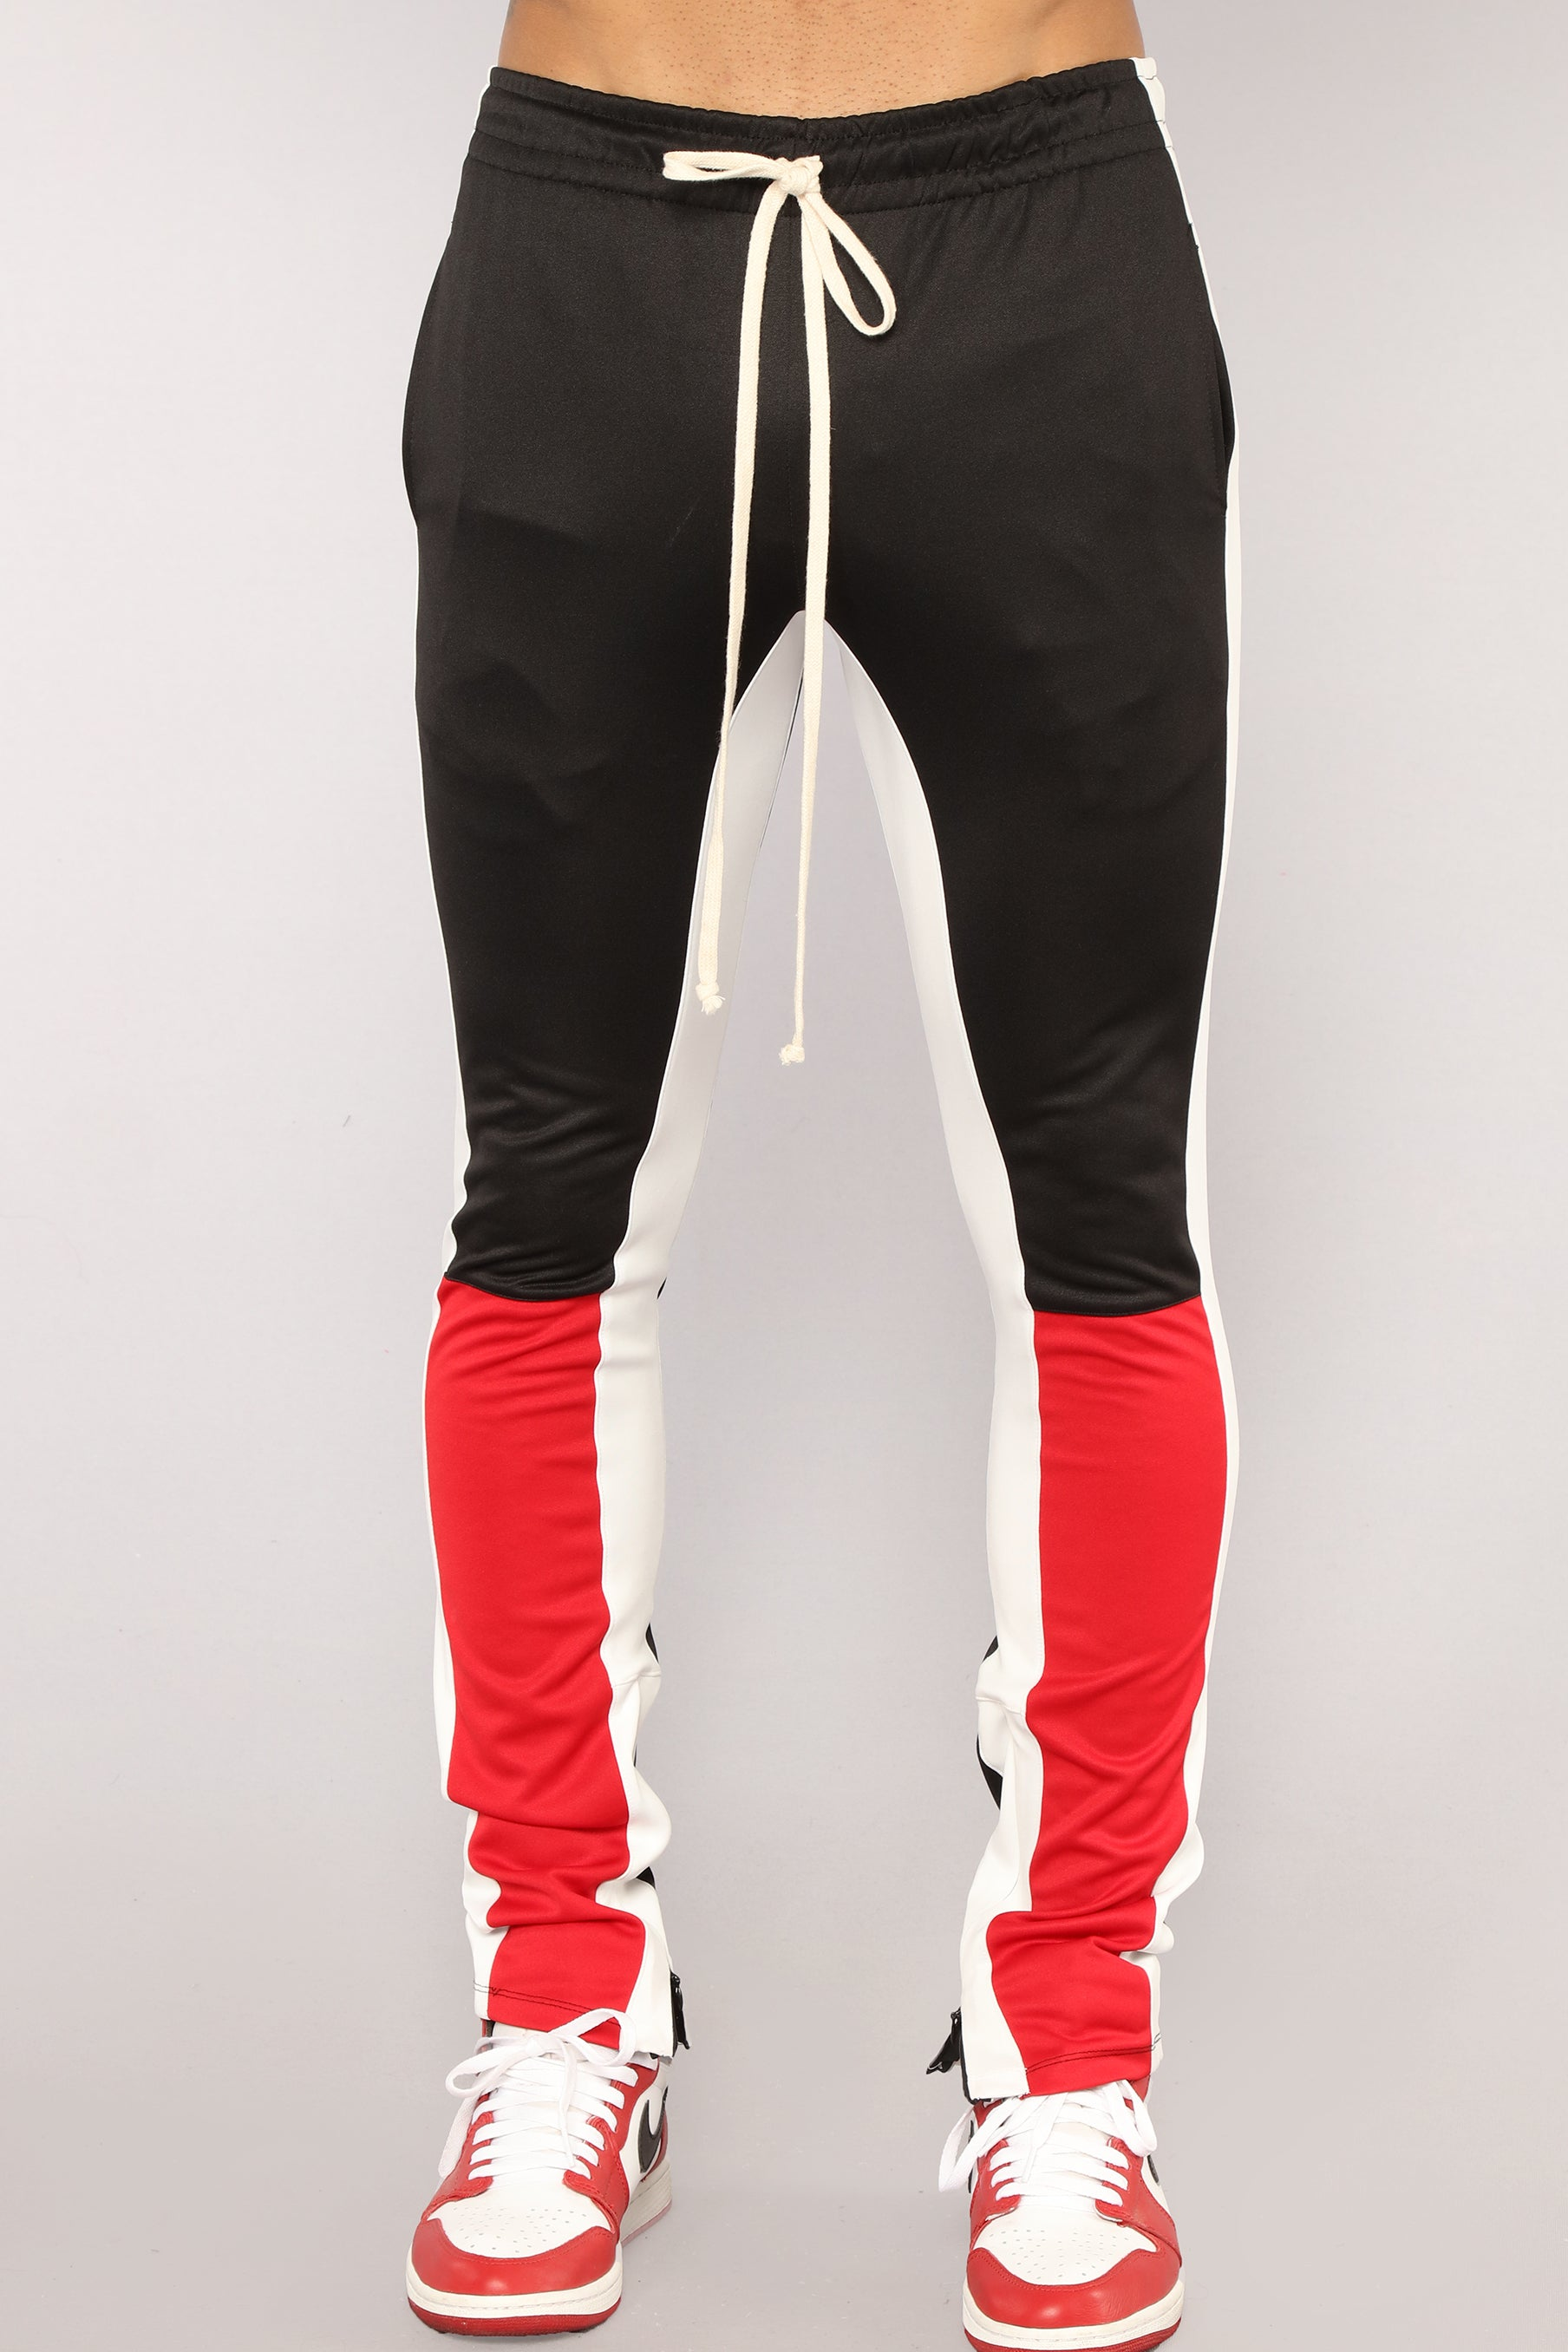 Union Track Pants Black Combo